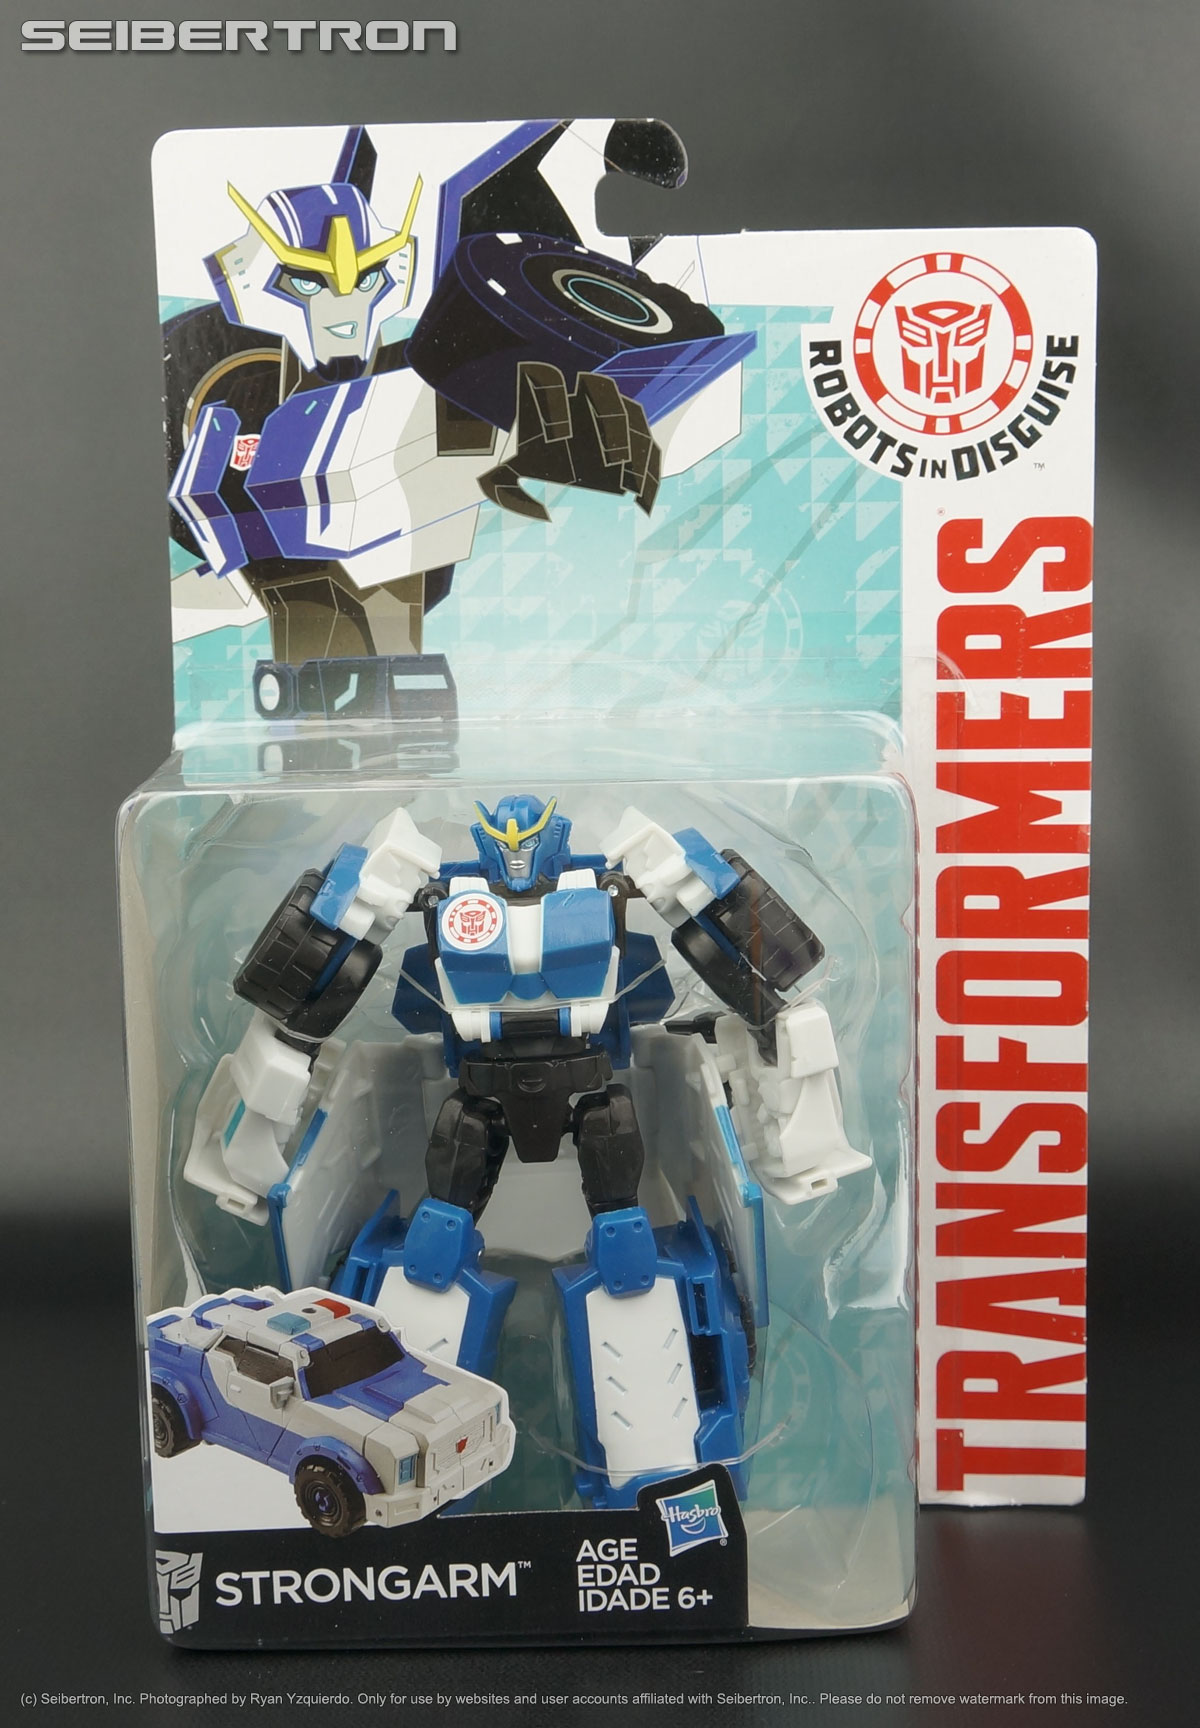 Strongarm Transformers Robots In Disguise